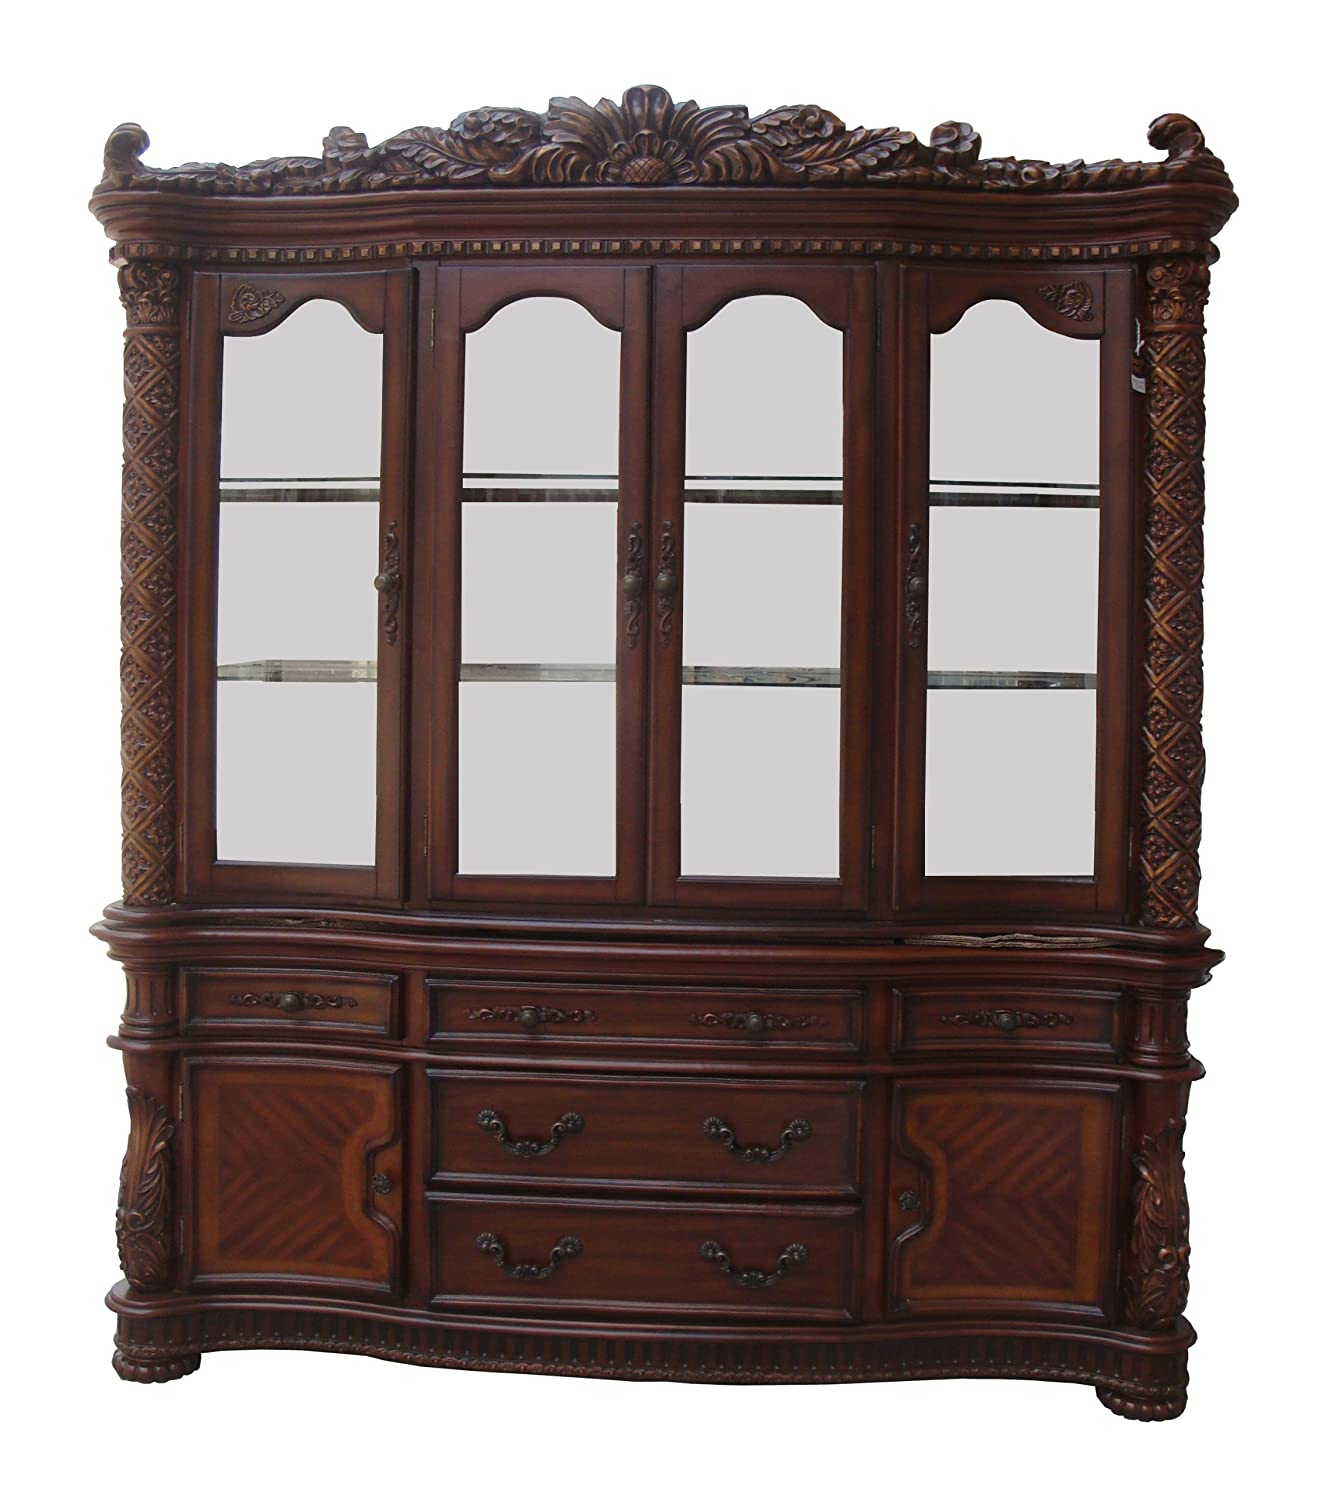 Attirant Amazon.com   ACME 60006 Vendome Hutch And Buffet China Cabinet, Cherry  Finish   China Cabinets